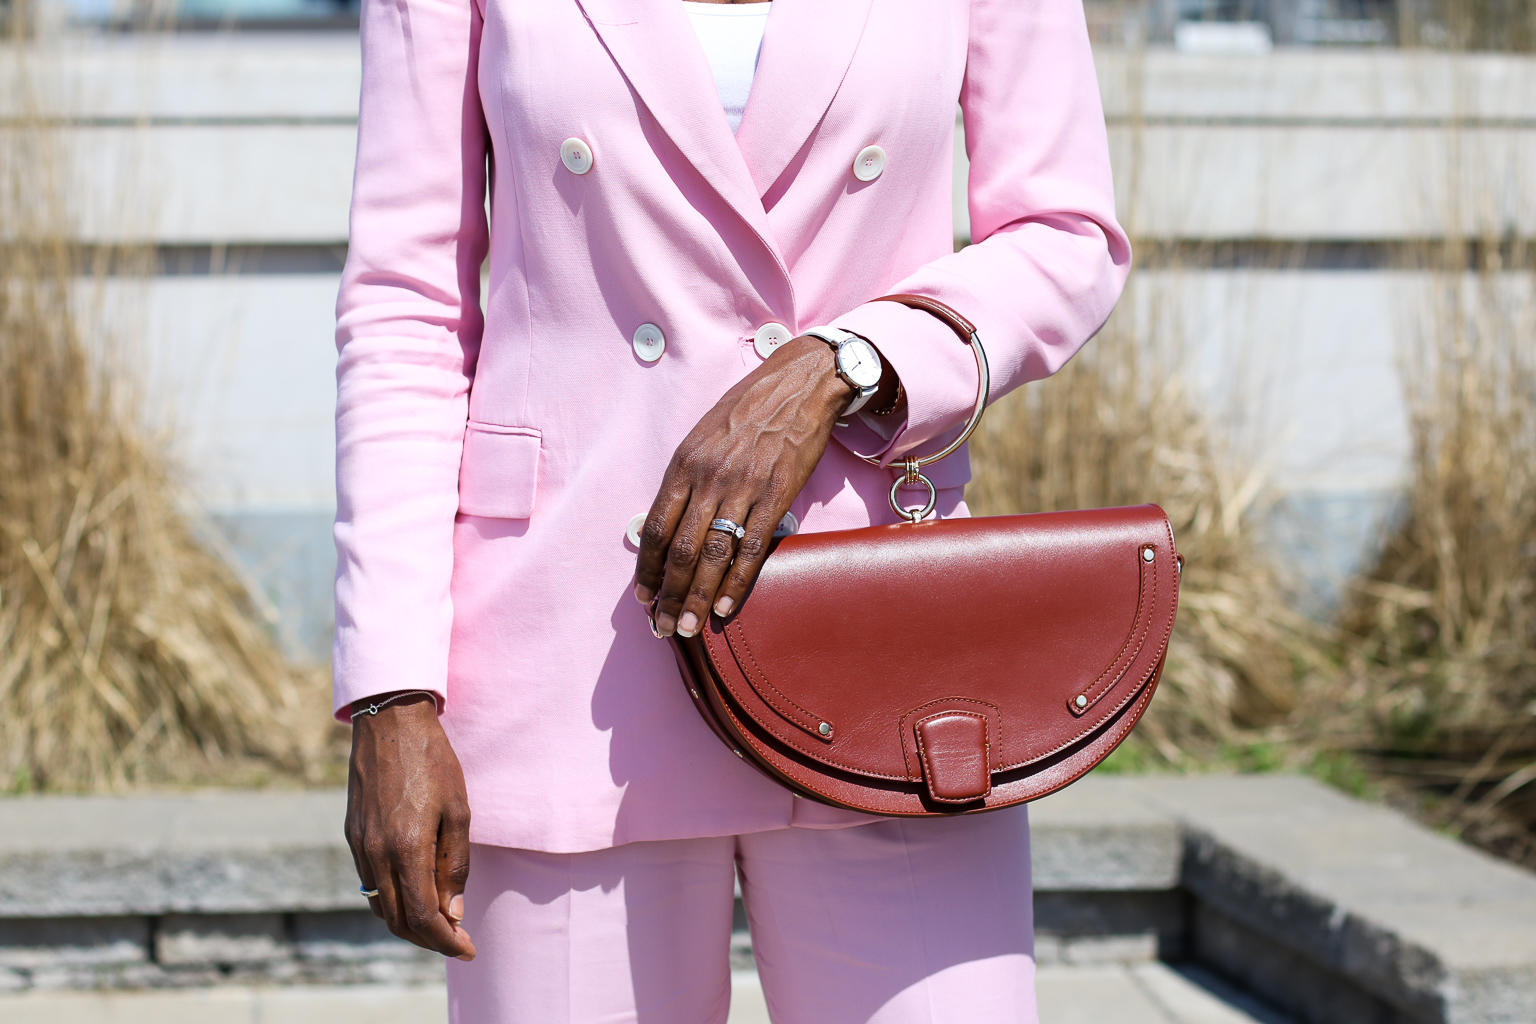 The Pink Suit Diaries - The Zara Pink Suit | Style Domination by Dominique